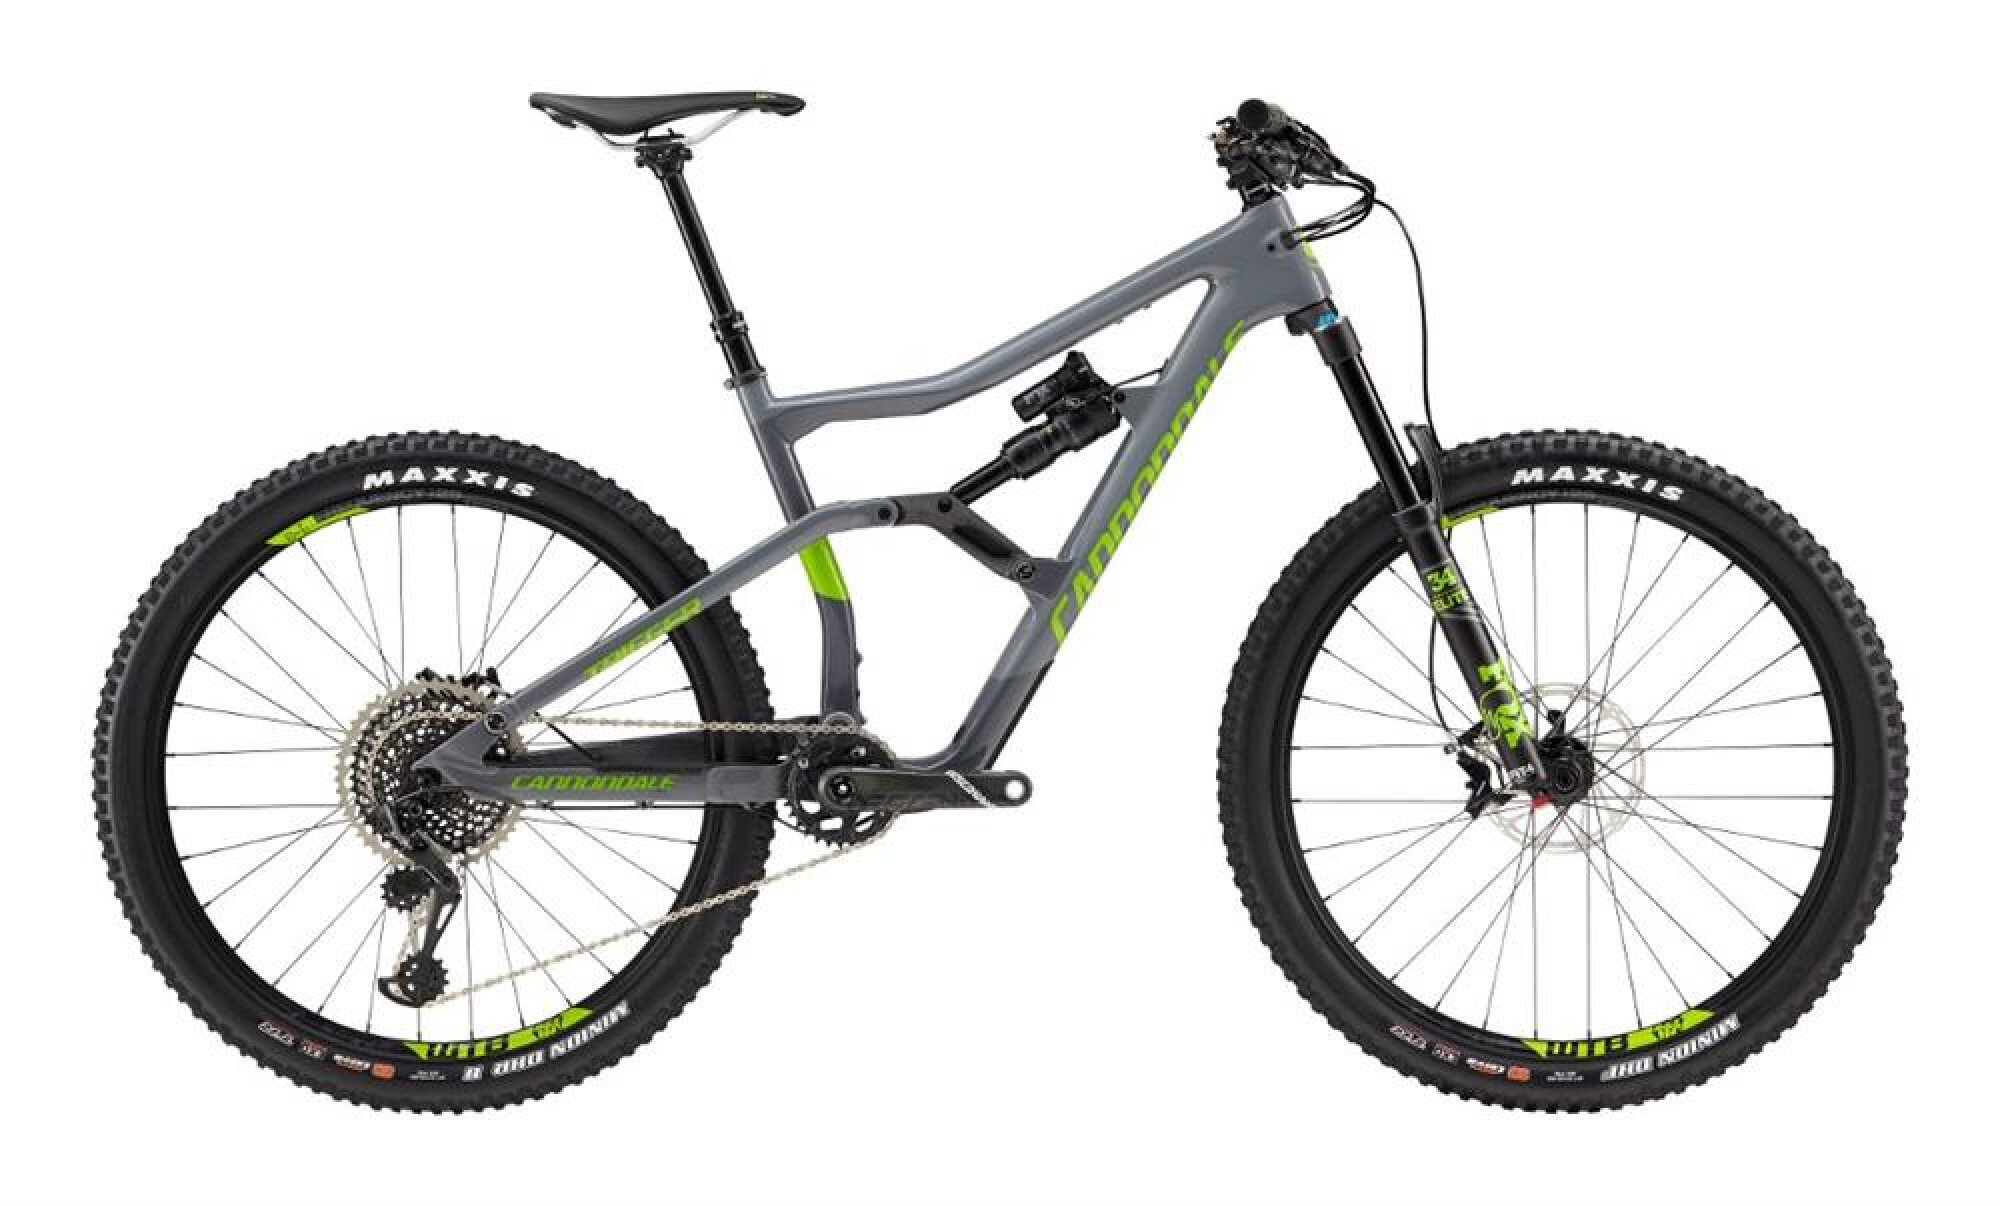 Mountainbike Cannondale Trigger Crb/Al 2 SGY 2018 bei